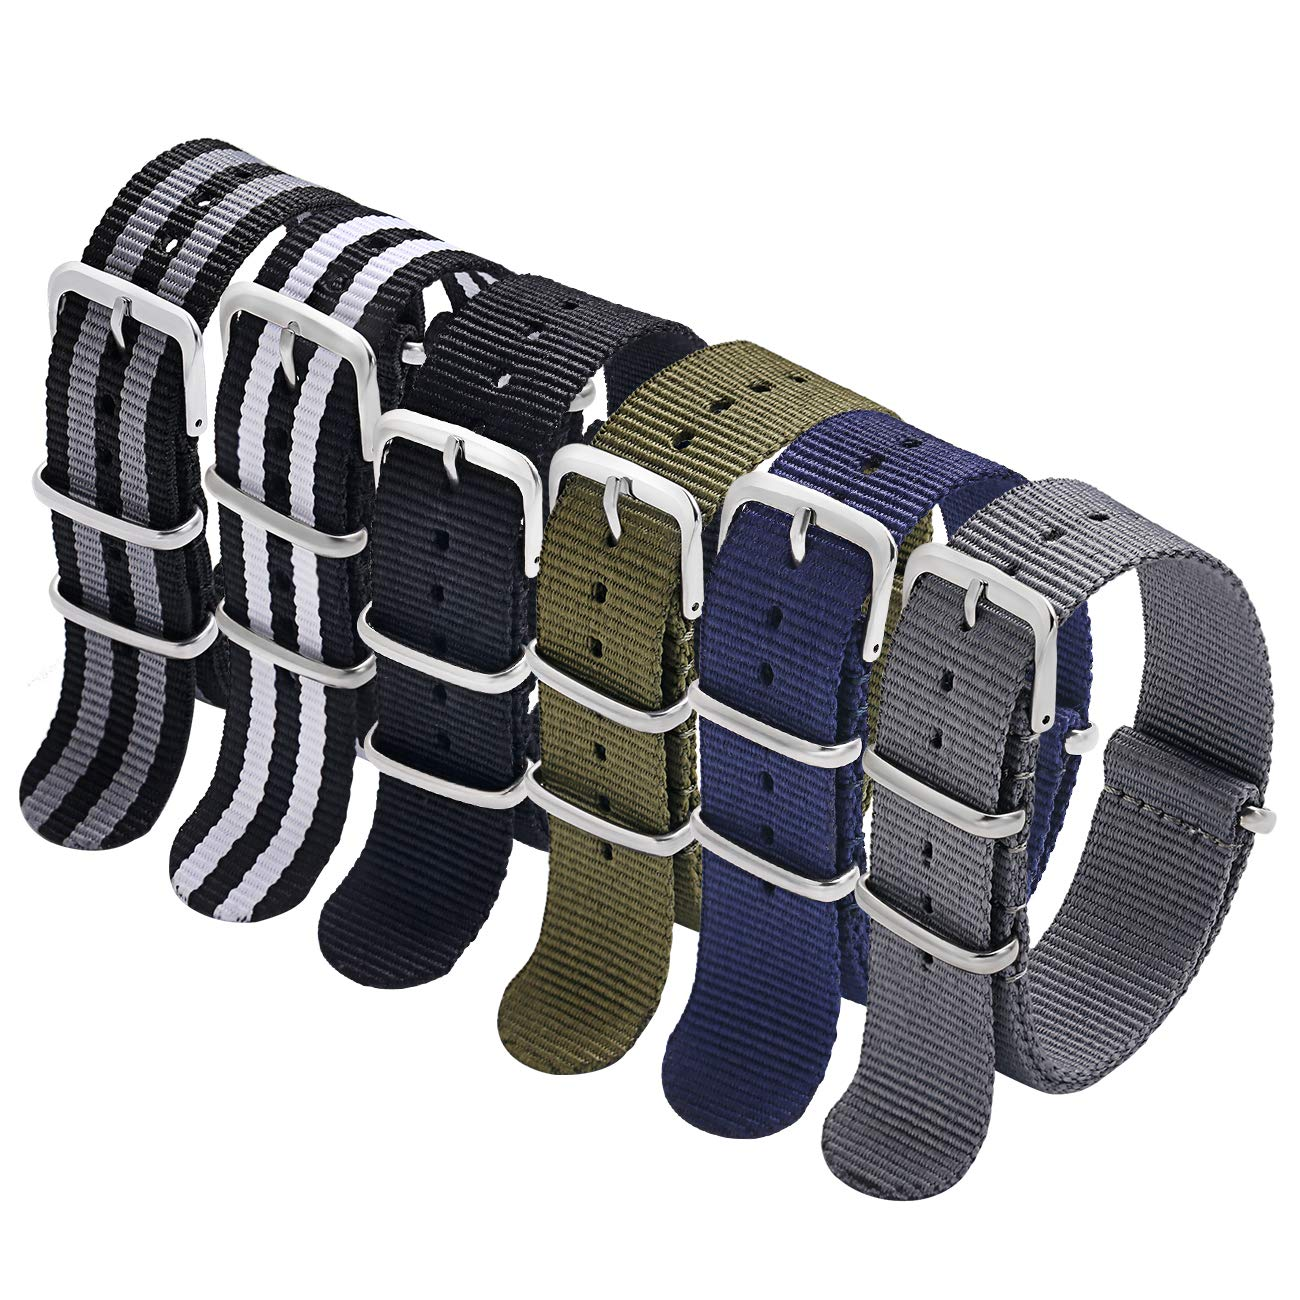 NATO Strap 6 Packs 18mm Watch Band Nylon Replacement Watch Straps for Men Women (Blue/White/Red+ Blue/White+Blue/Pink+Blue/Red+Blue/White/Green)